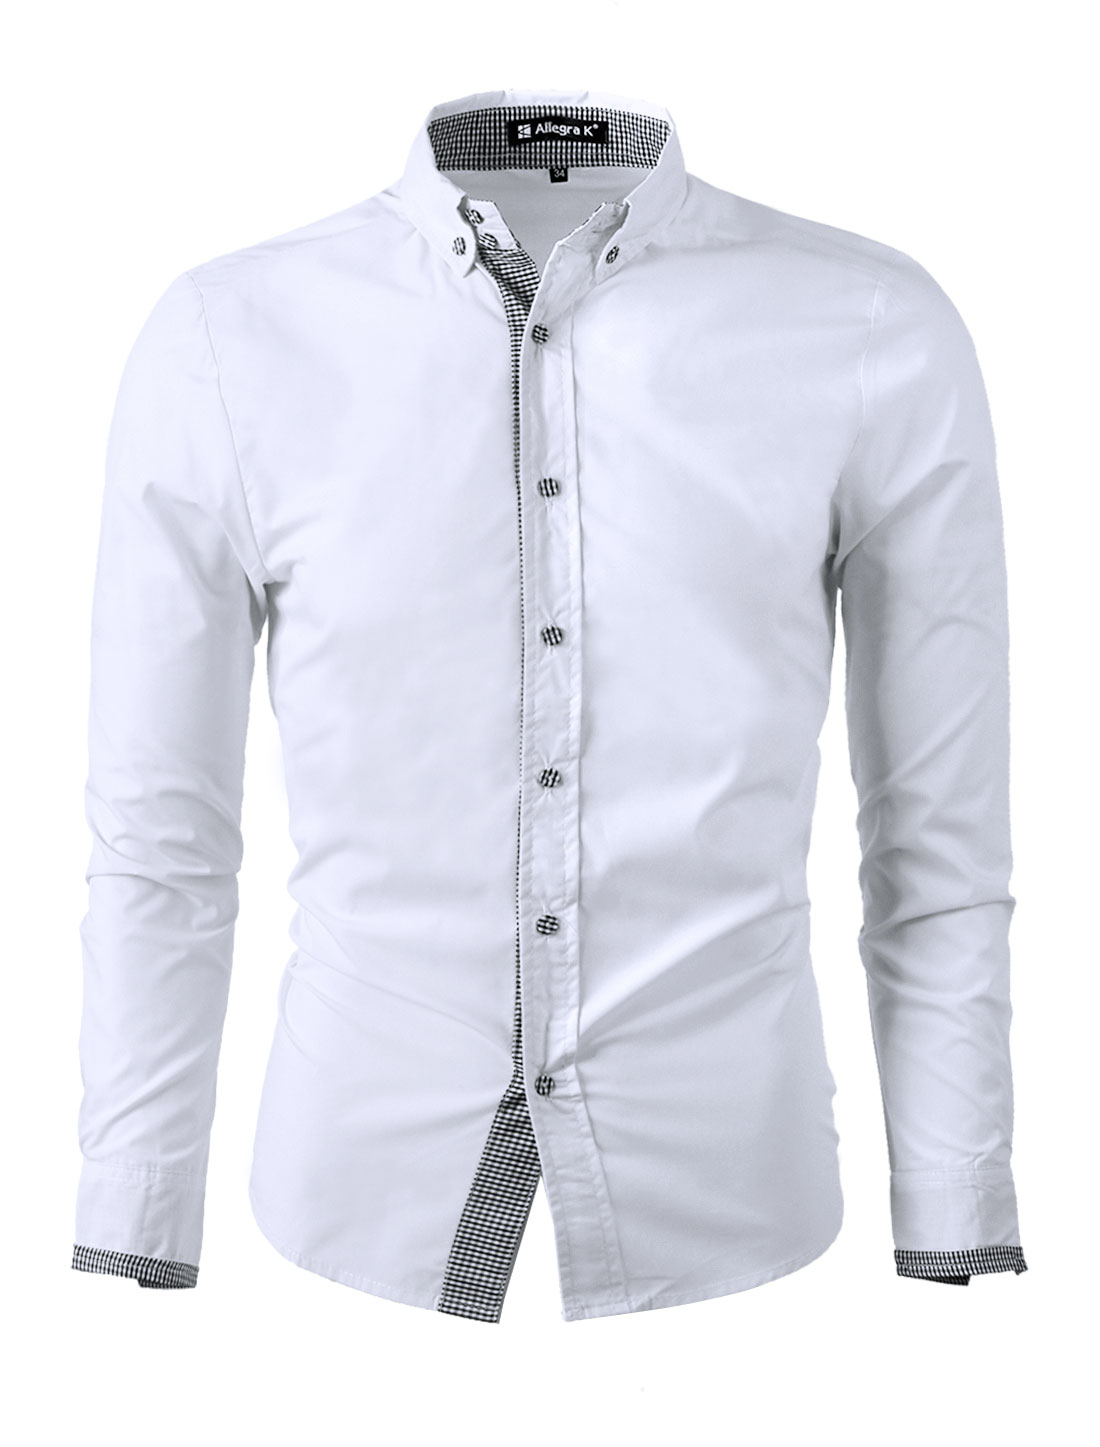 Unique Bargains Mens New Style Point Collar Long Sleeve Button